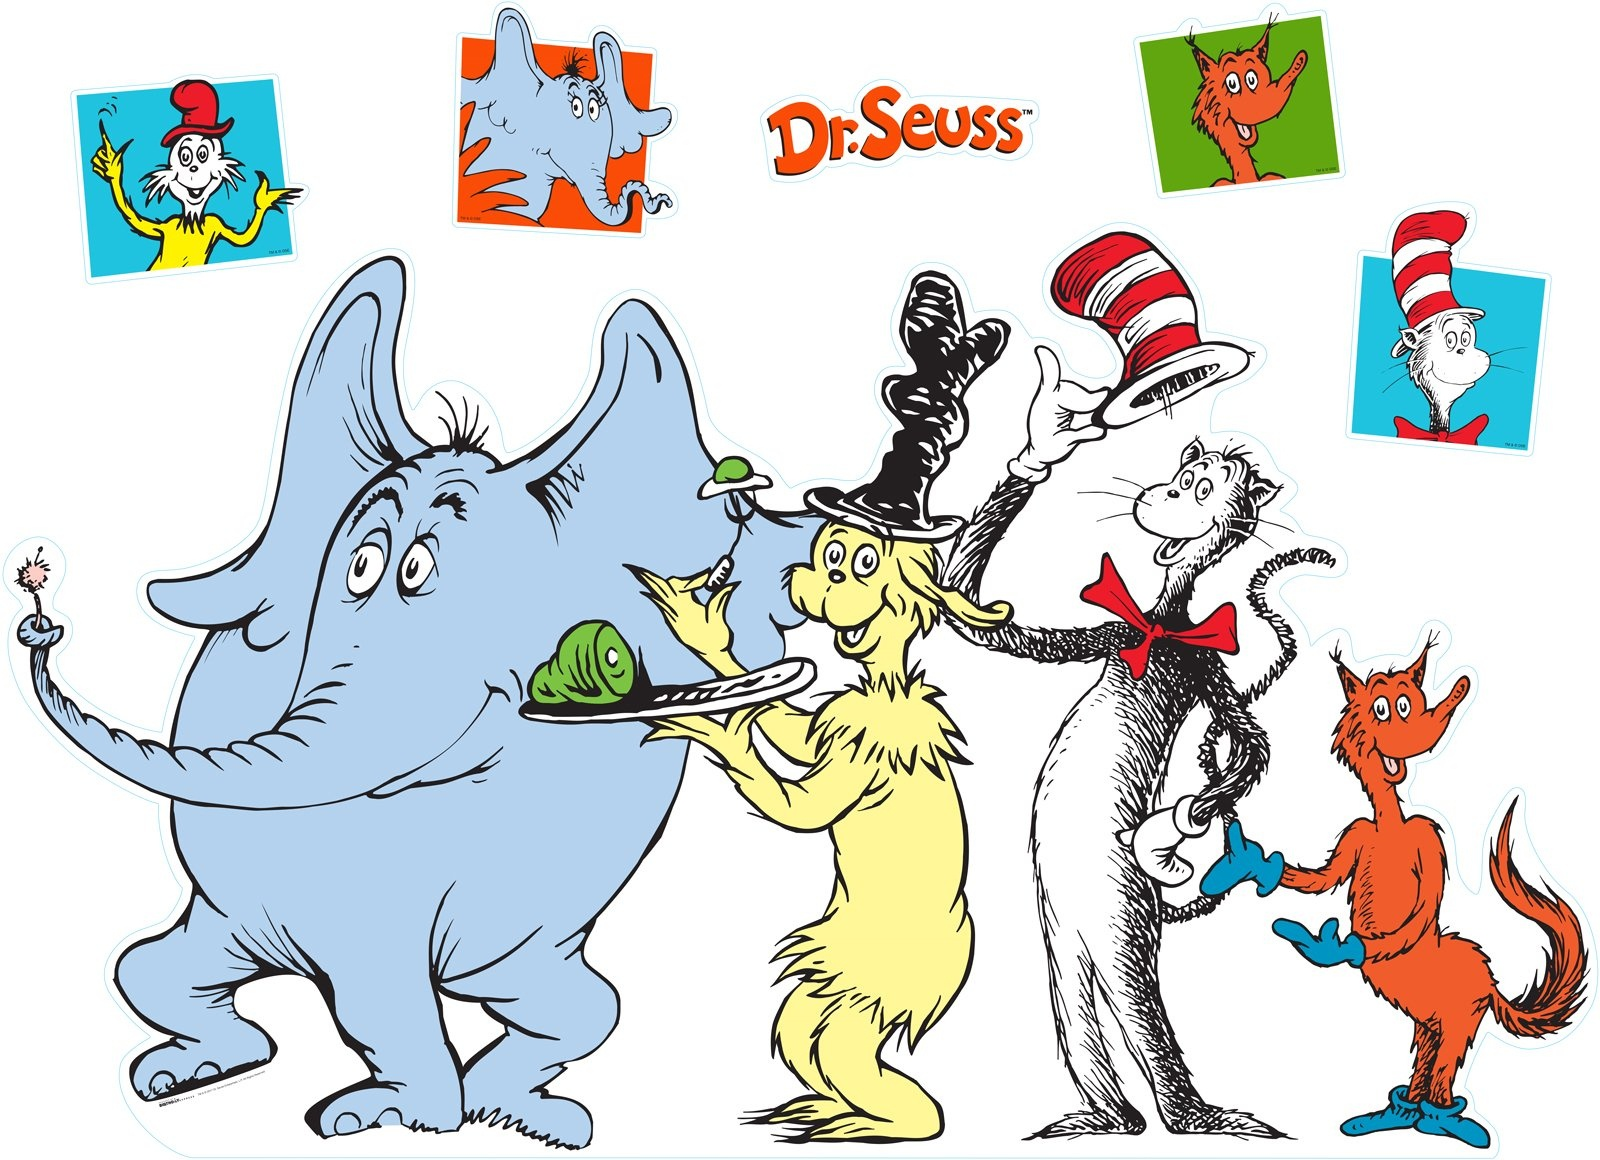 Images Of Dr Seuss Characters | Free Download Best Images Of Dr - Free Printable Dr Seuss Characters